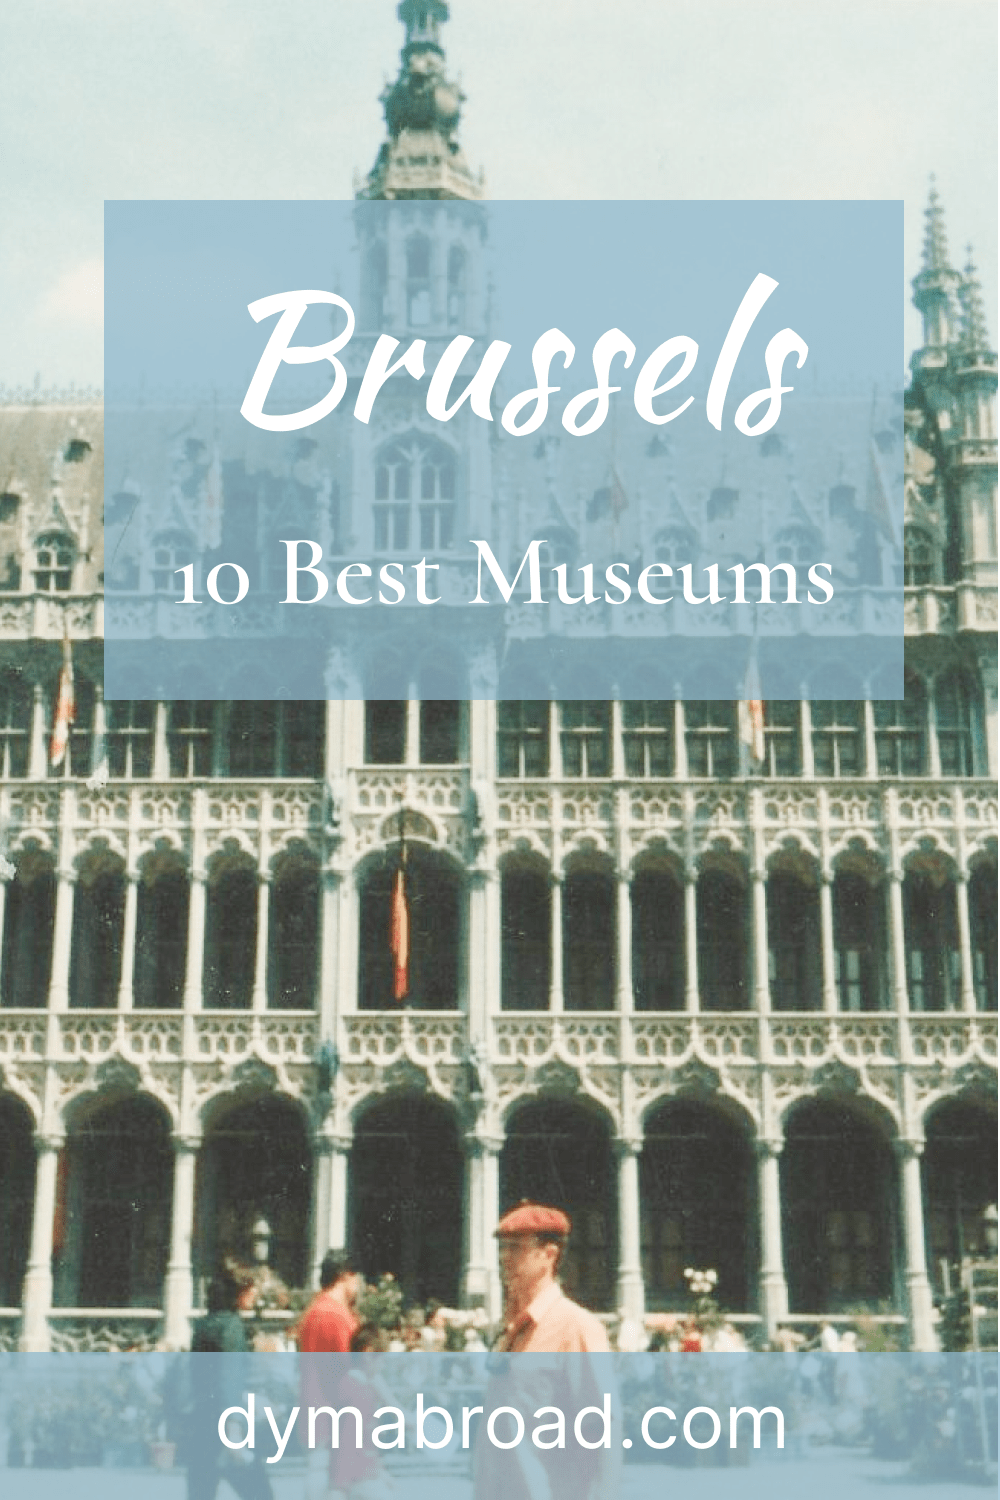 10 Best Museums in Brussels Pinterest Image